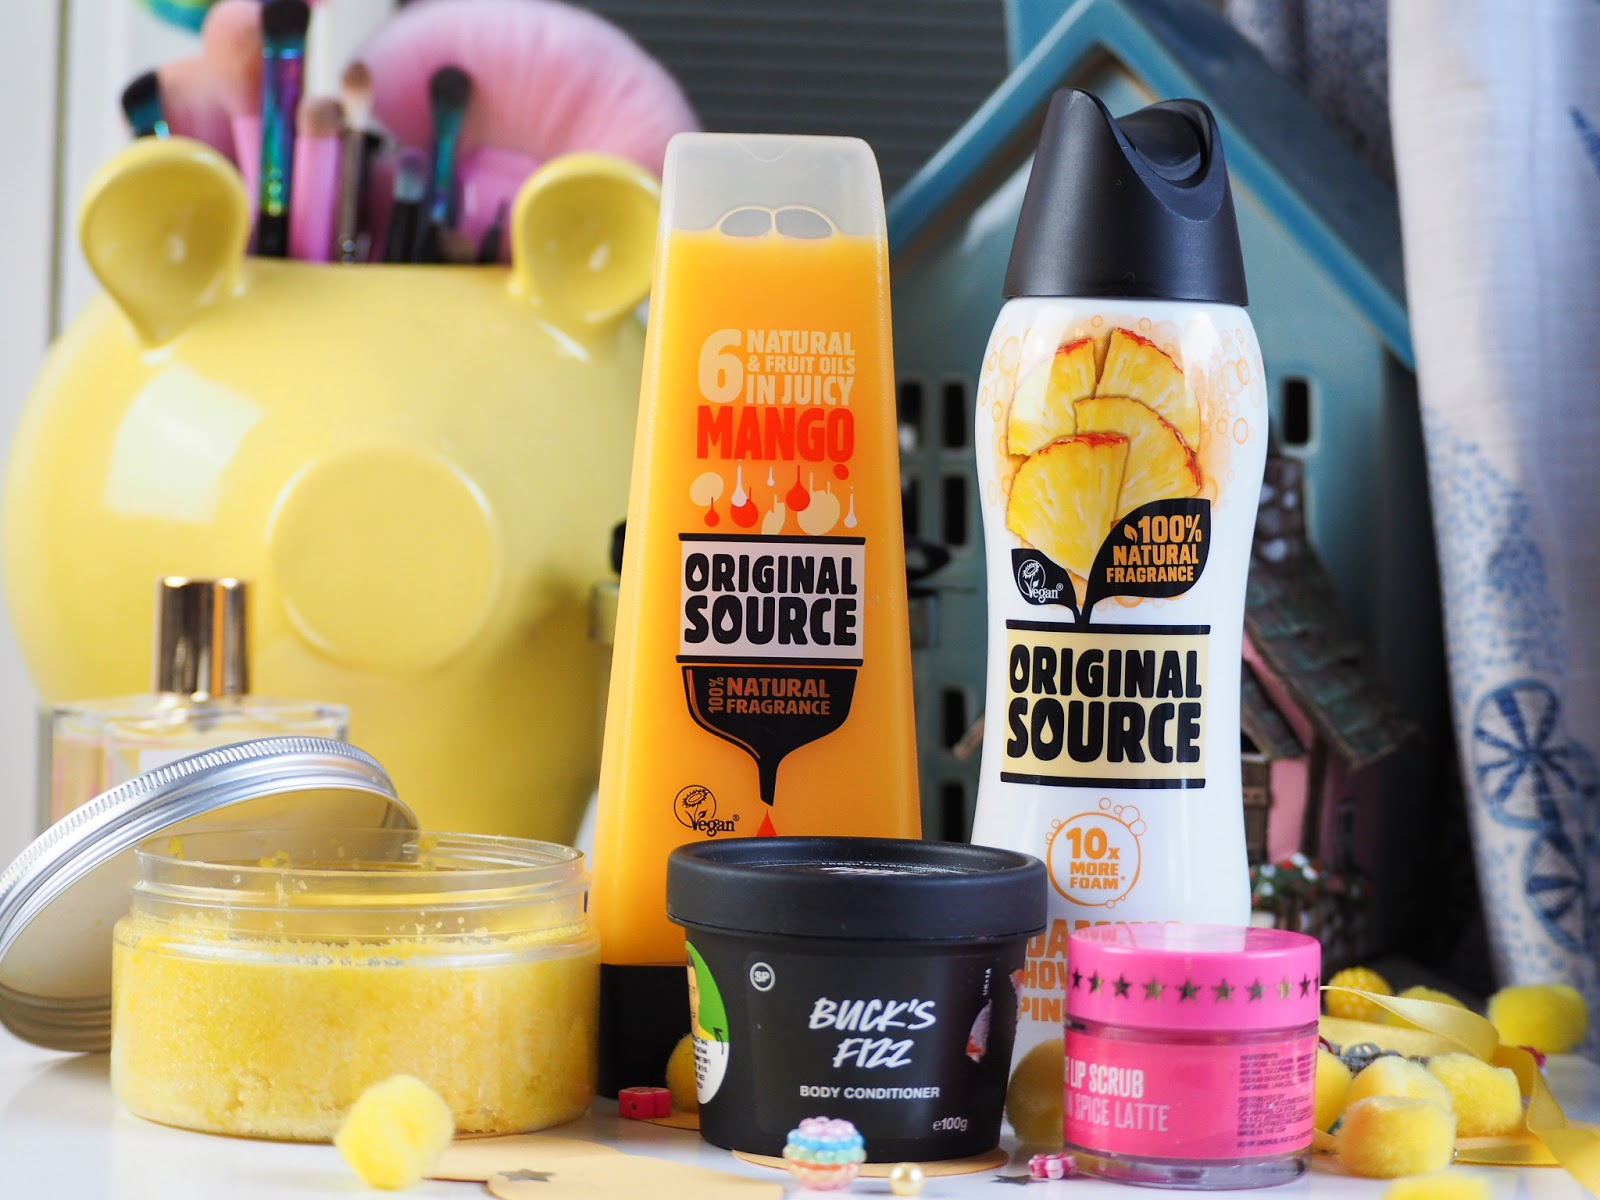 The Best Smelling Body Products, original source, scrub, happyplace cosmetics.